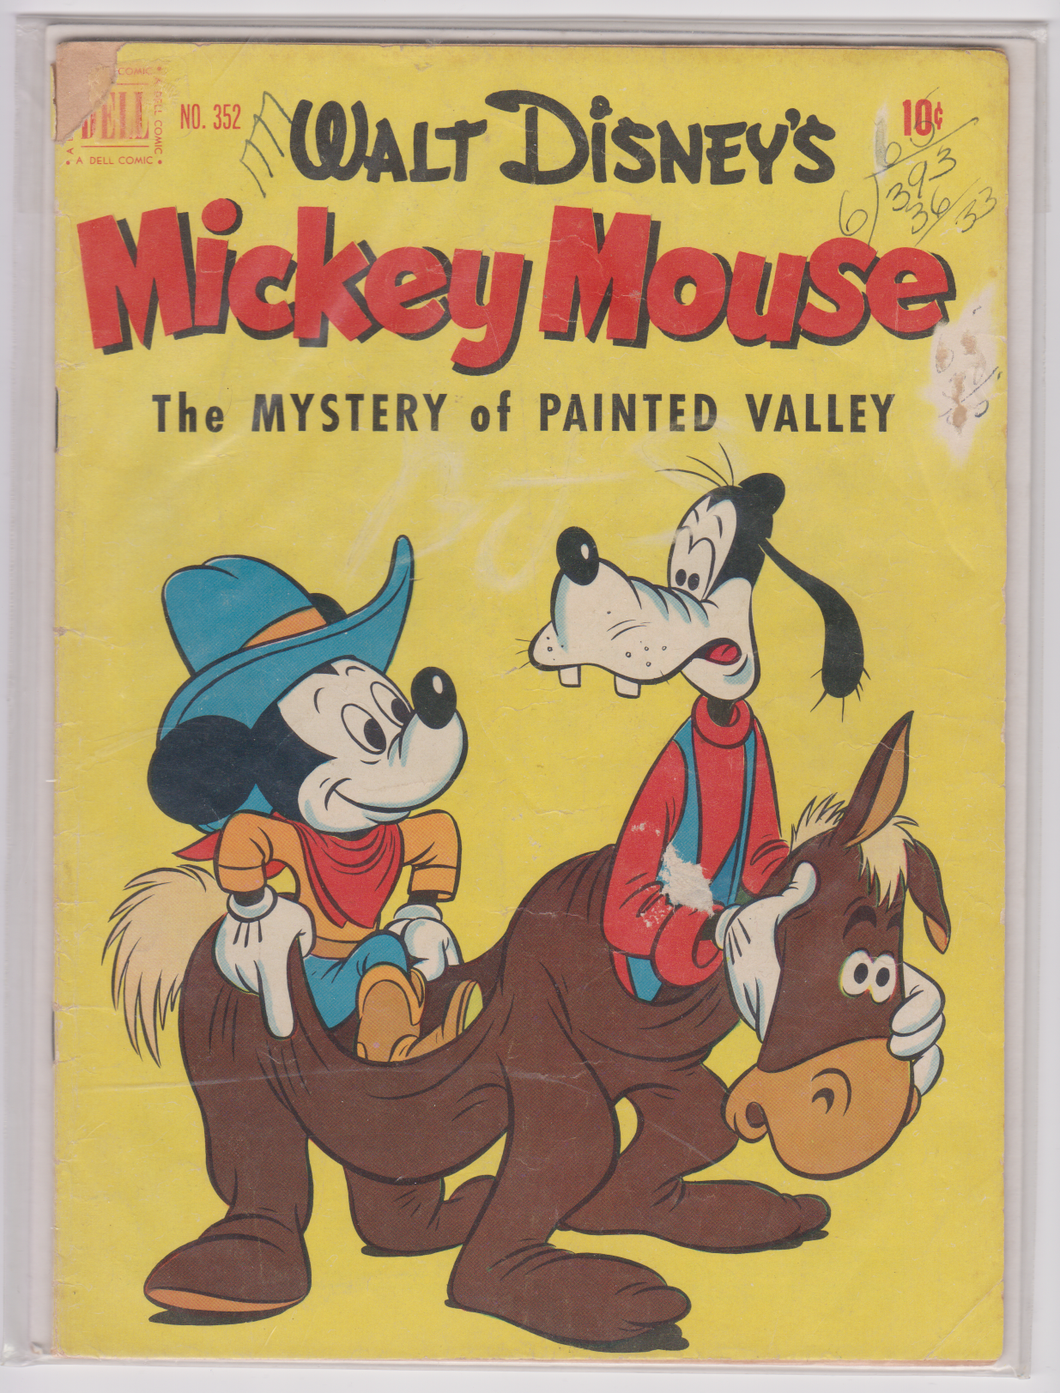 Walt Disney's Mickey Mouse #352 - The Mystery of Painted Valley